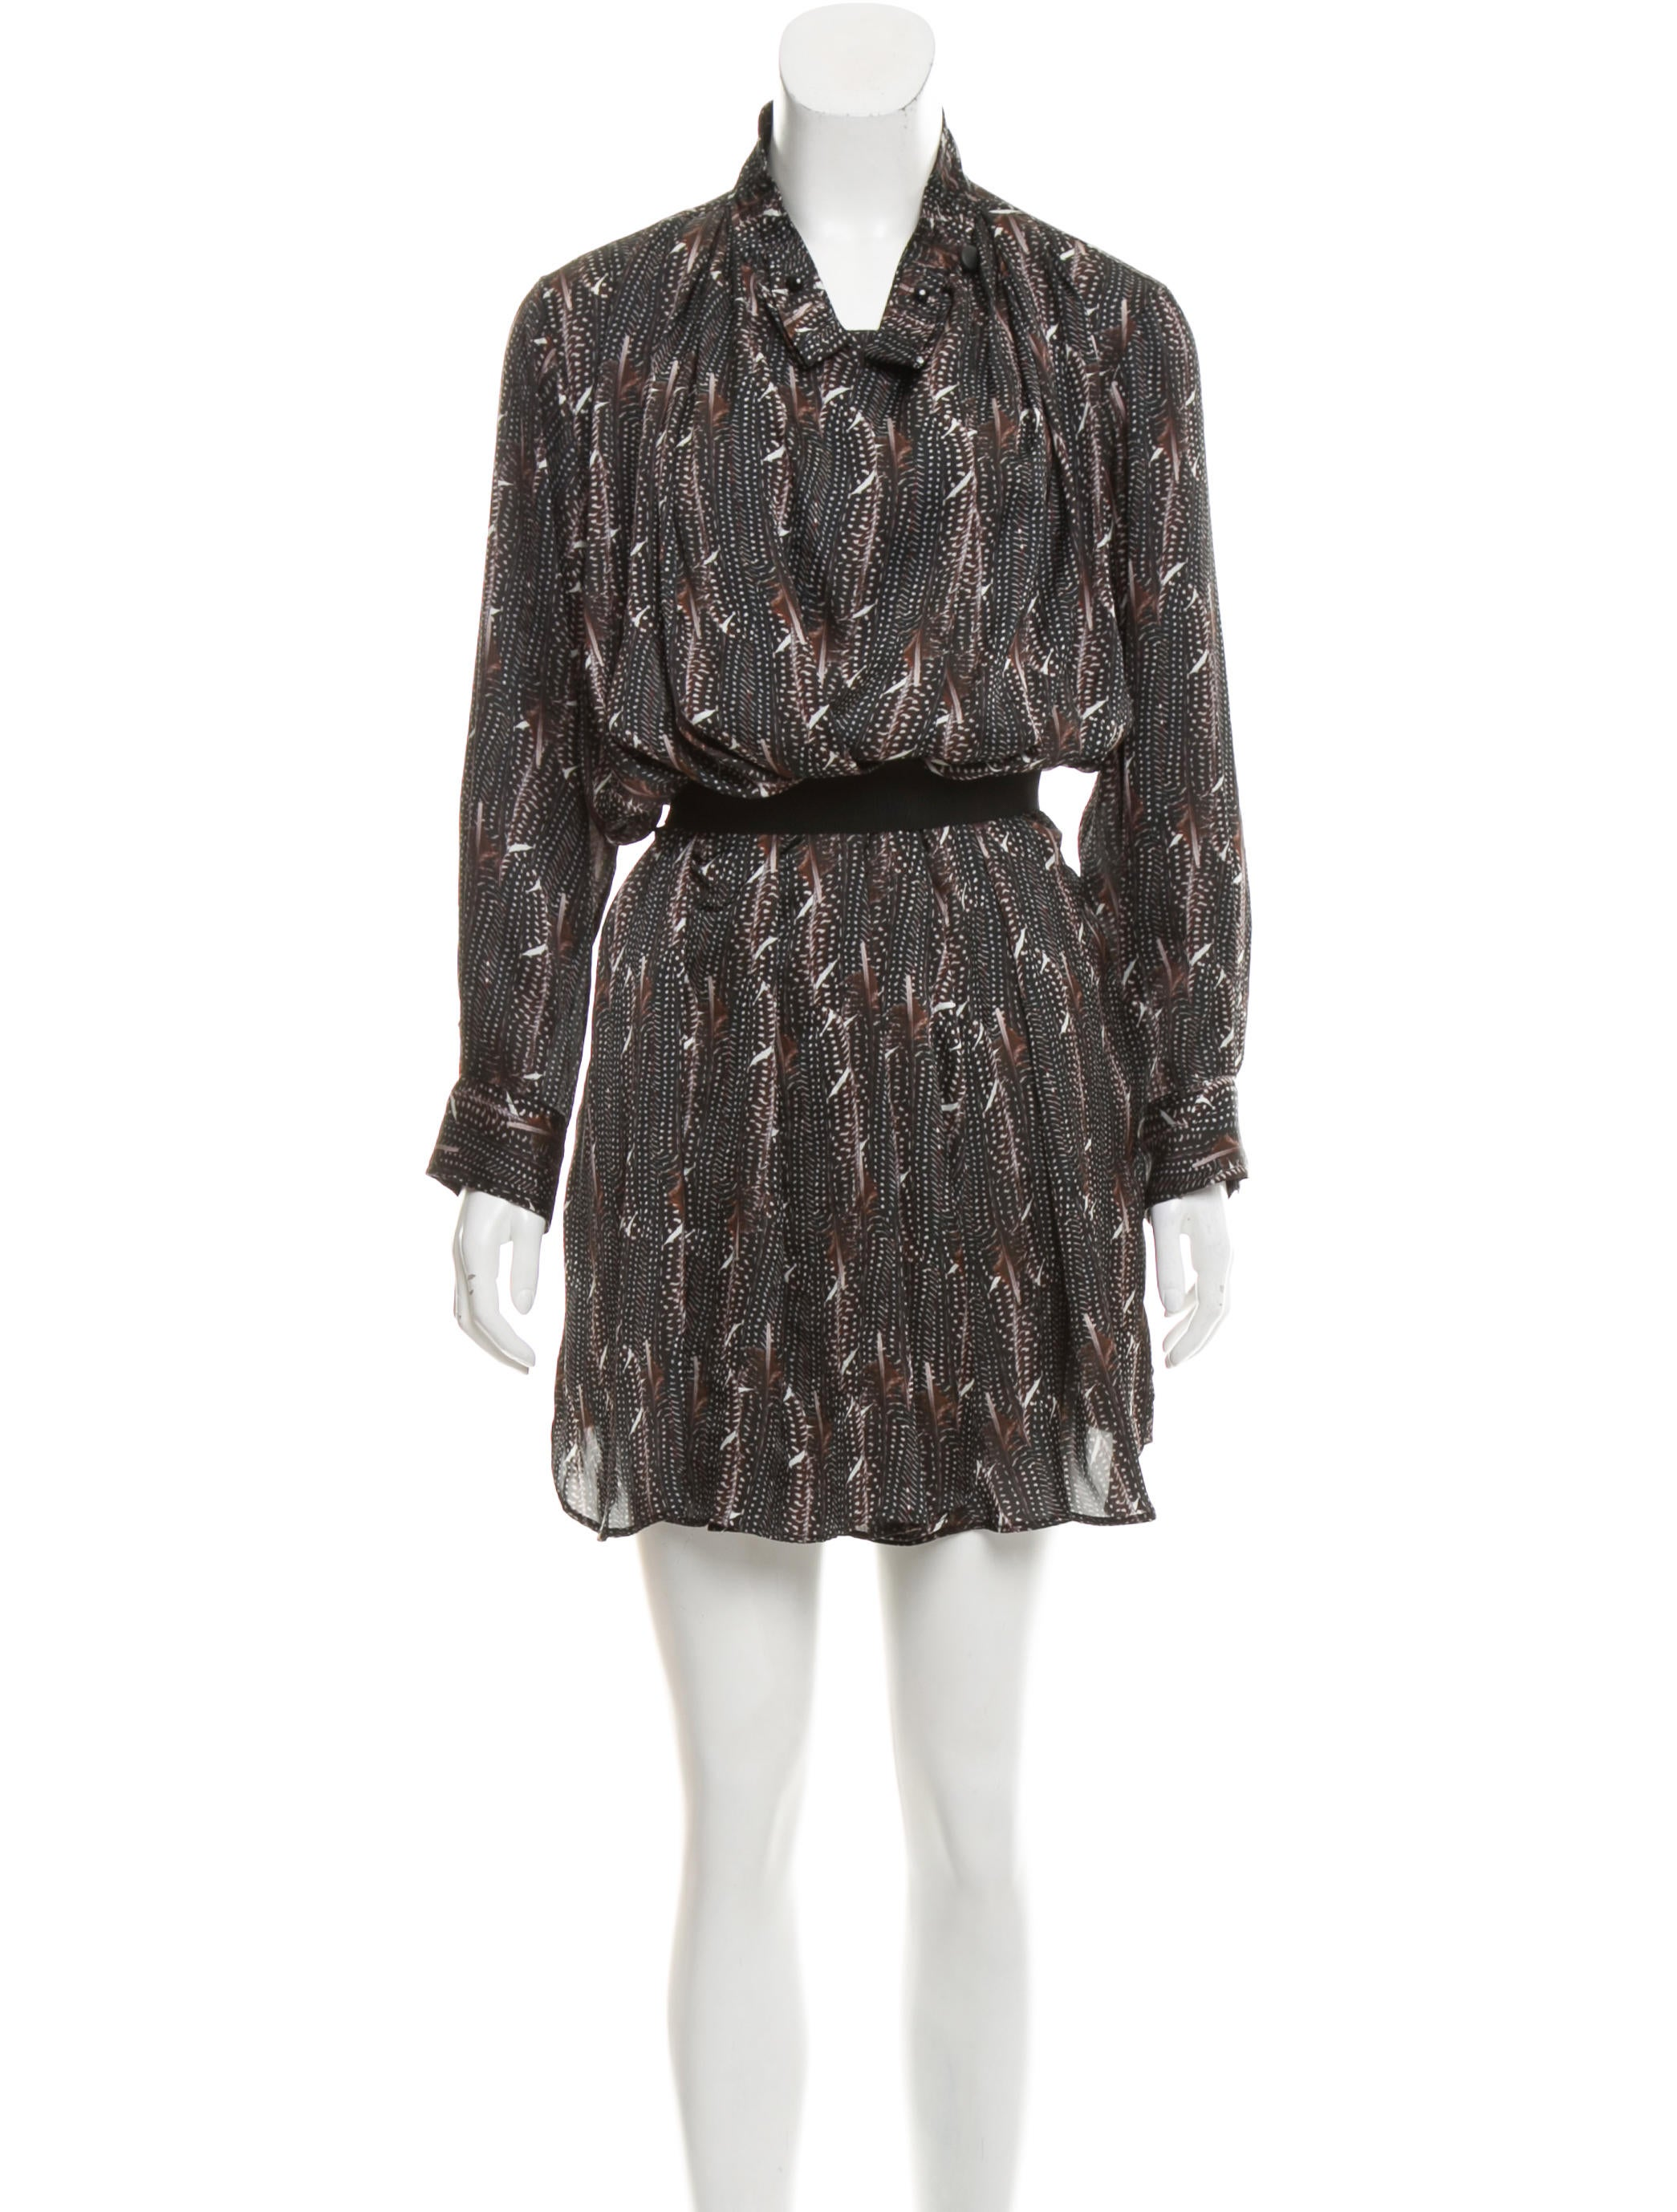 Toile Isabel Marant Printed Shirt Dress Clothing